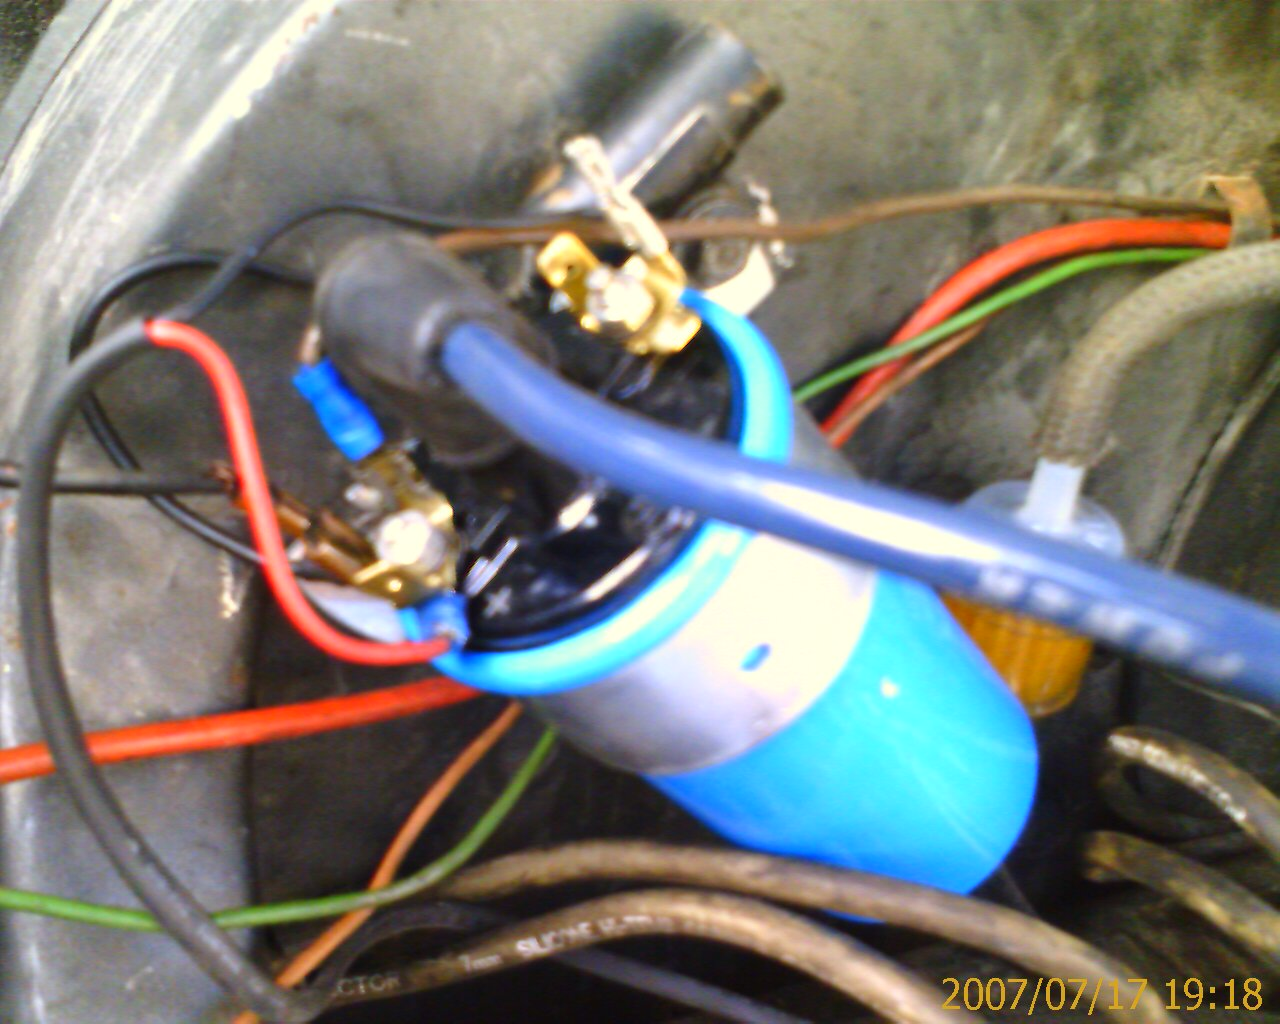 beetle ignition coil wiring thesamba.com :: performance / engines / transmissions ... e90 ignition coil wiring diagram